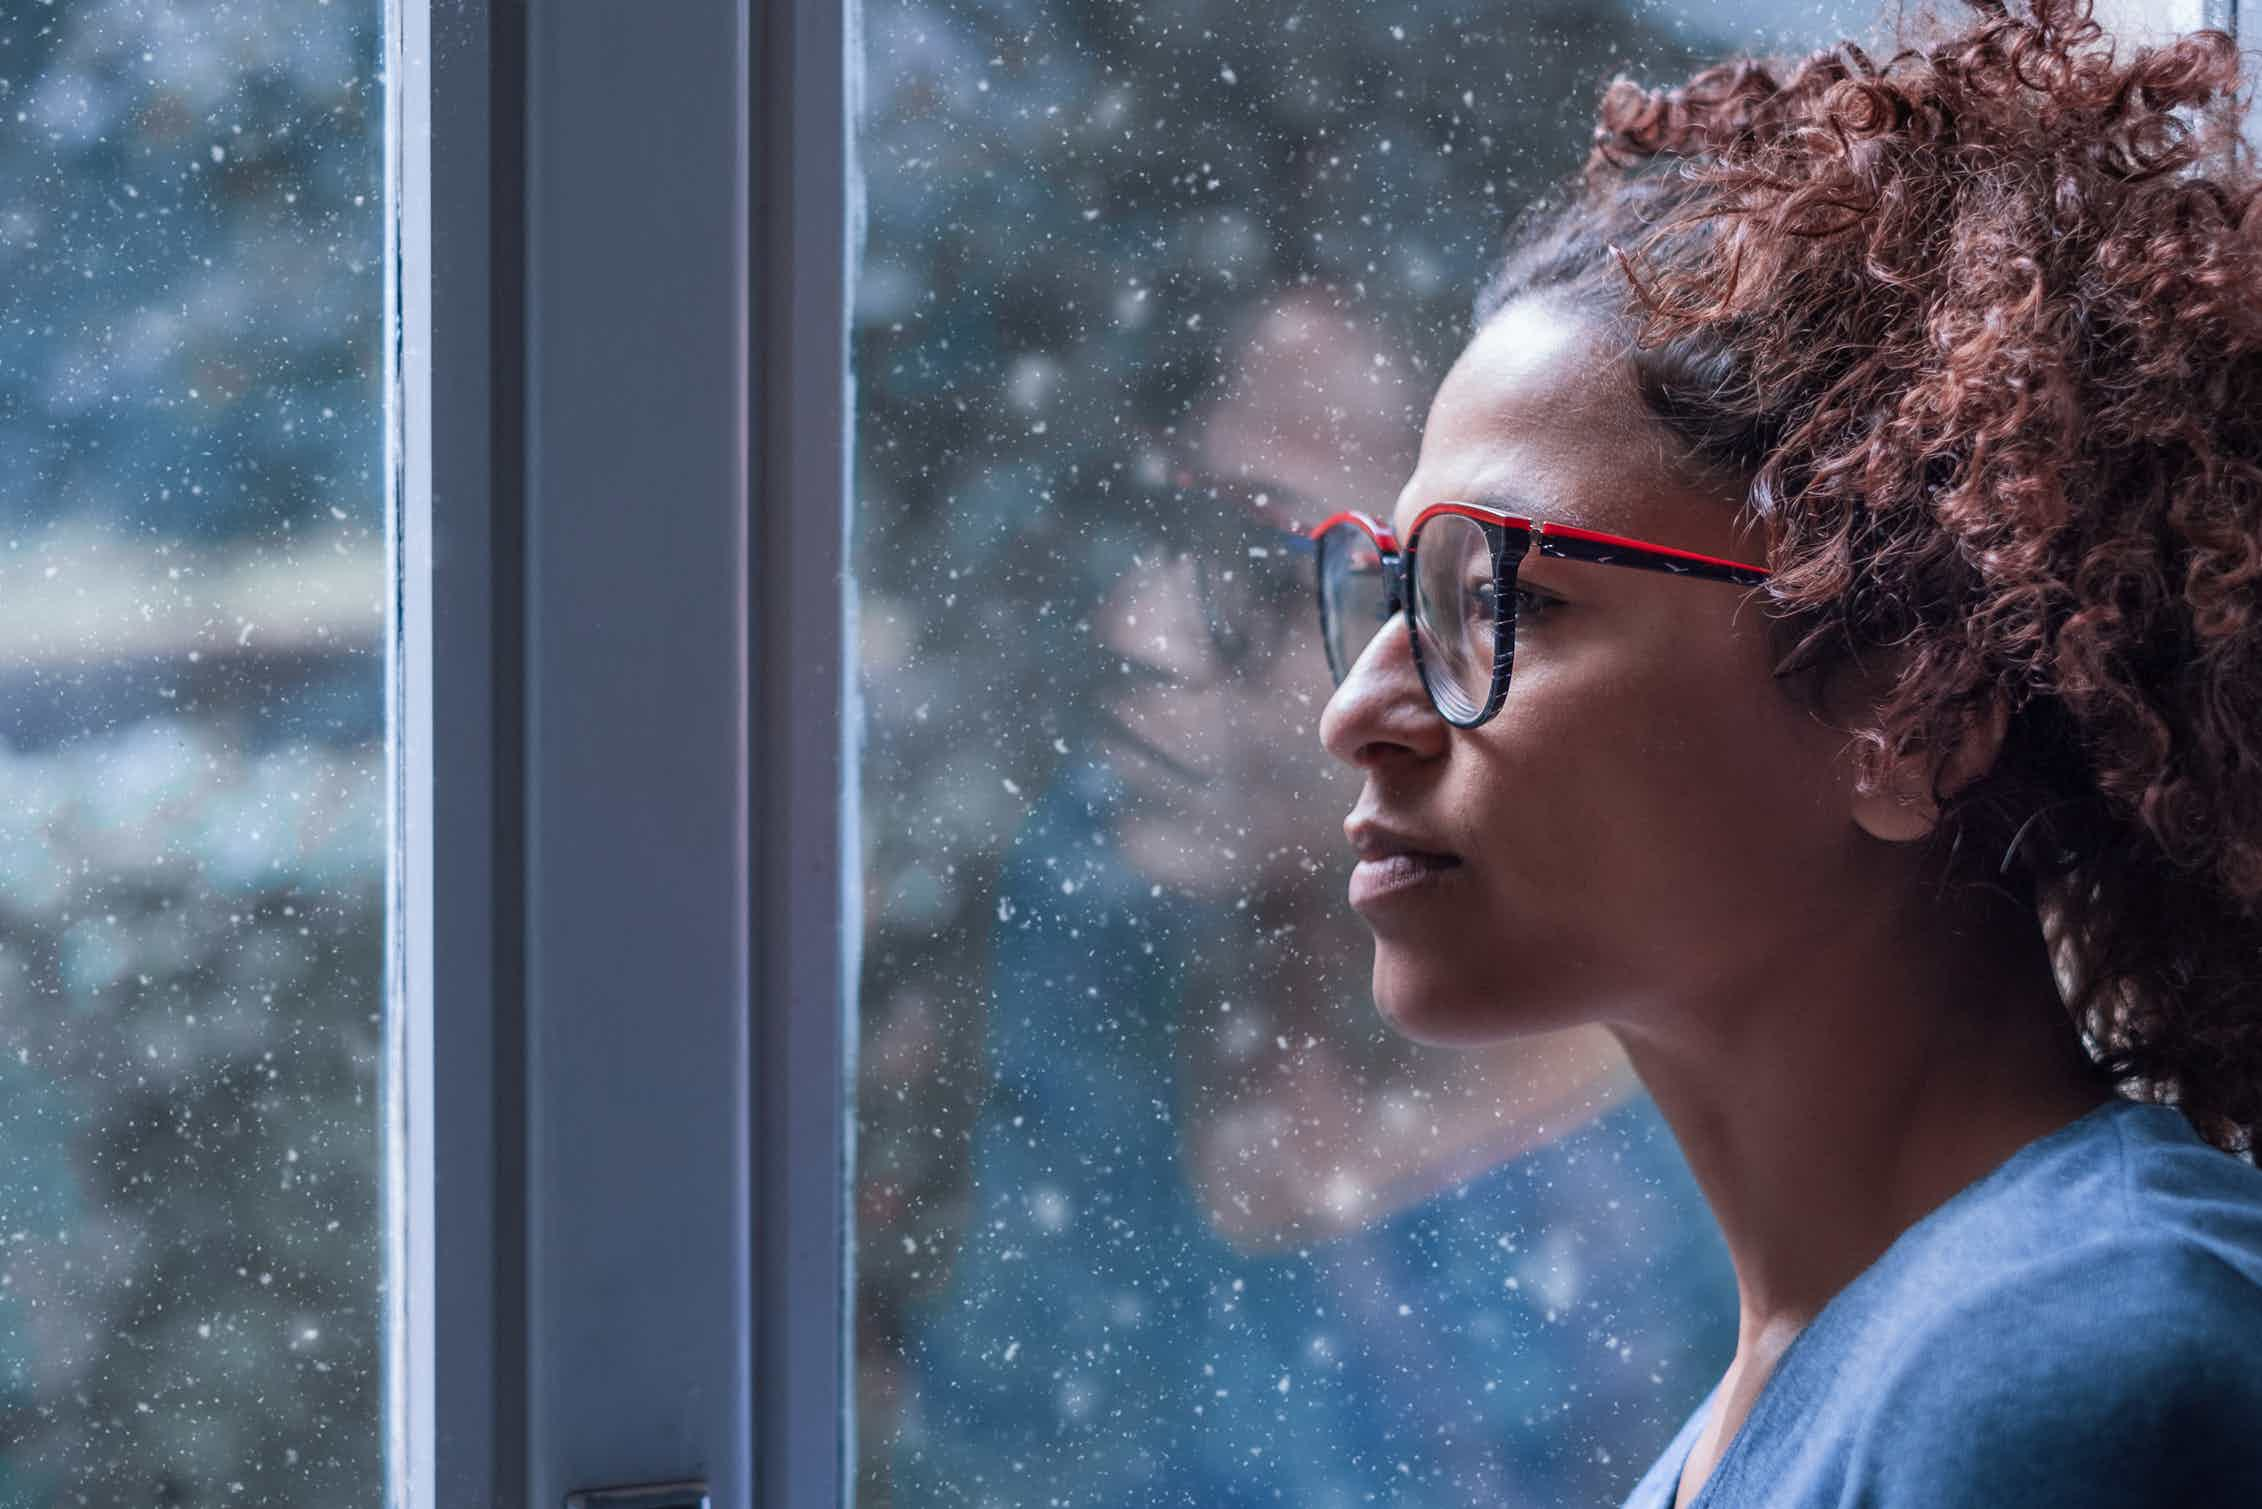 The holidays remind us that grief cannot be wished away